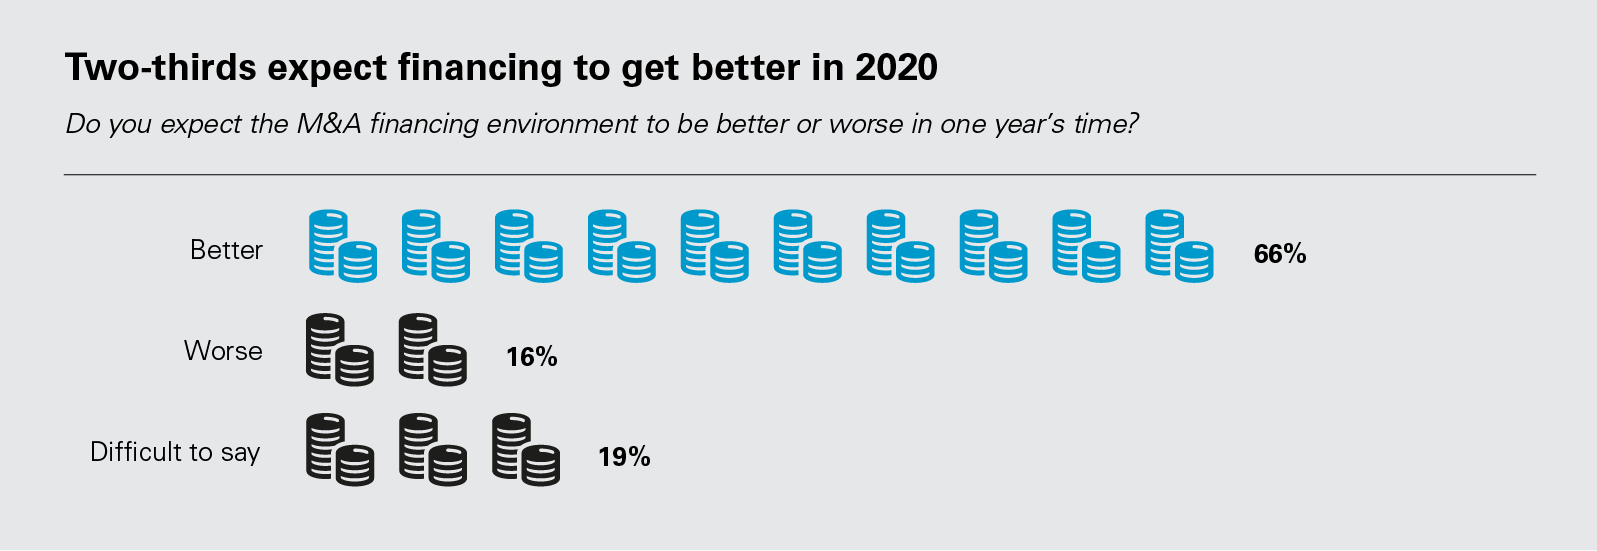 Two-thirds expect financing to get better in 2020